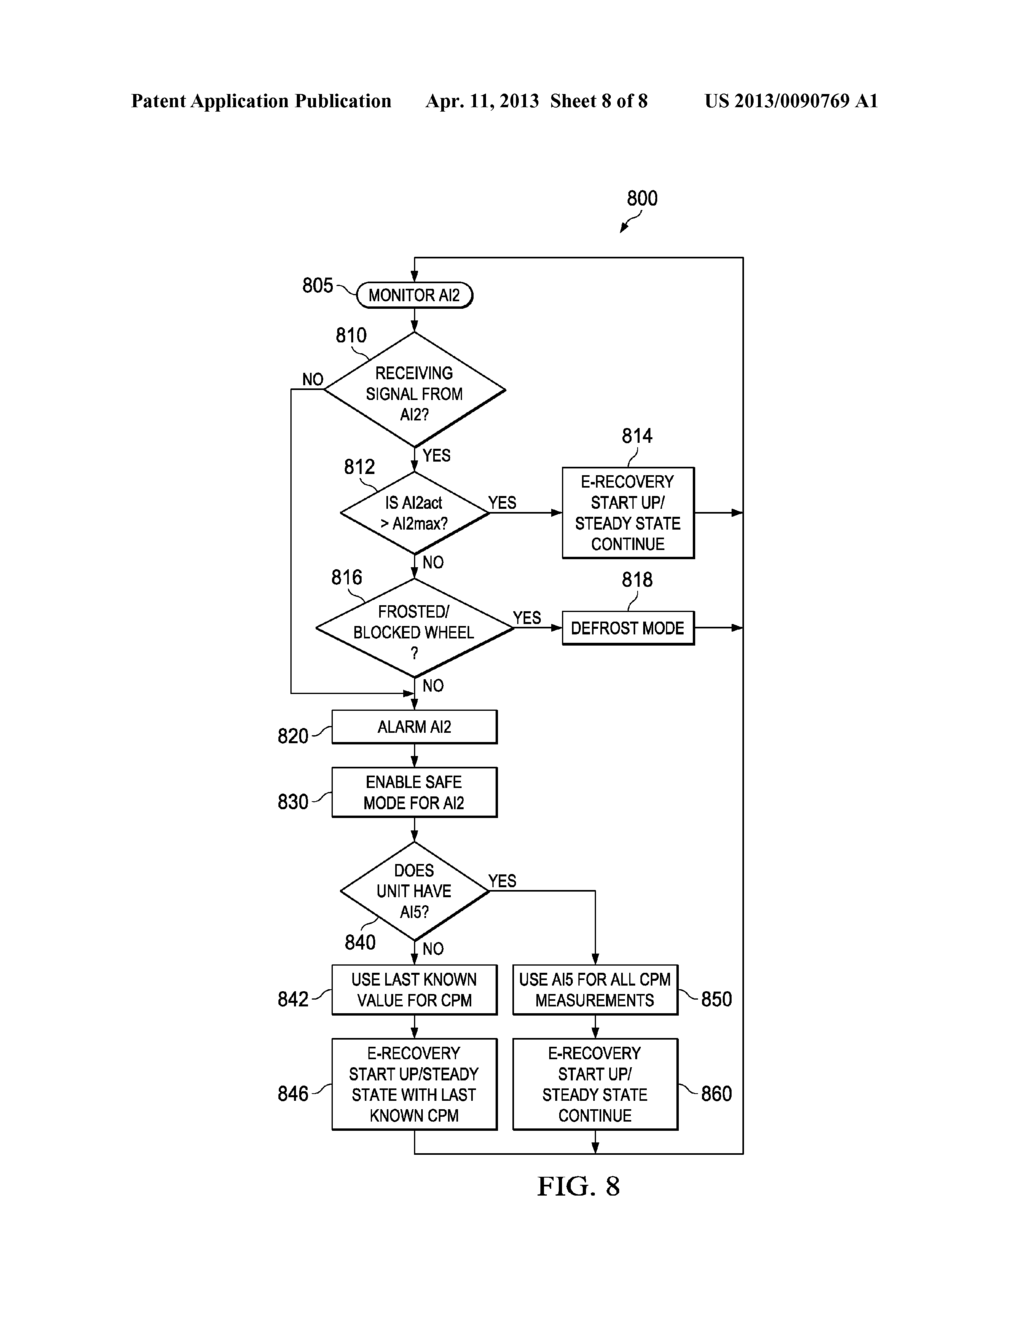 hight resolution of methods of operating an hvac system an hvac system and a controller therefor employing a self check scheme and predetermined operating procedures